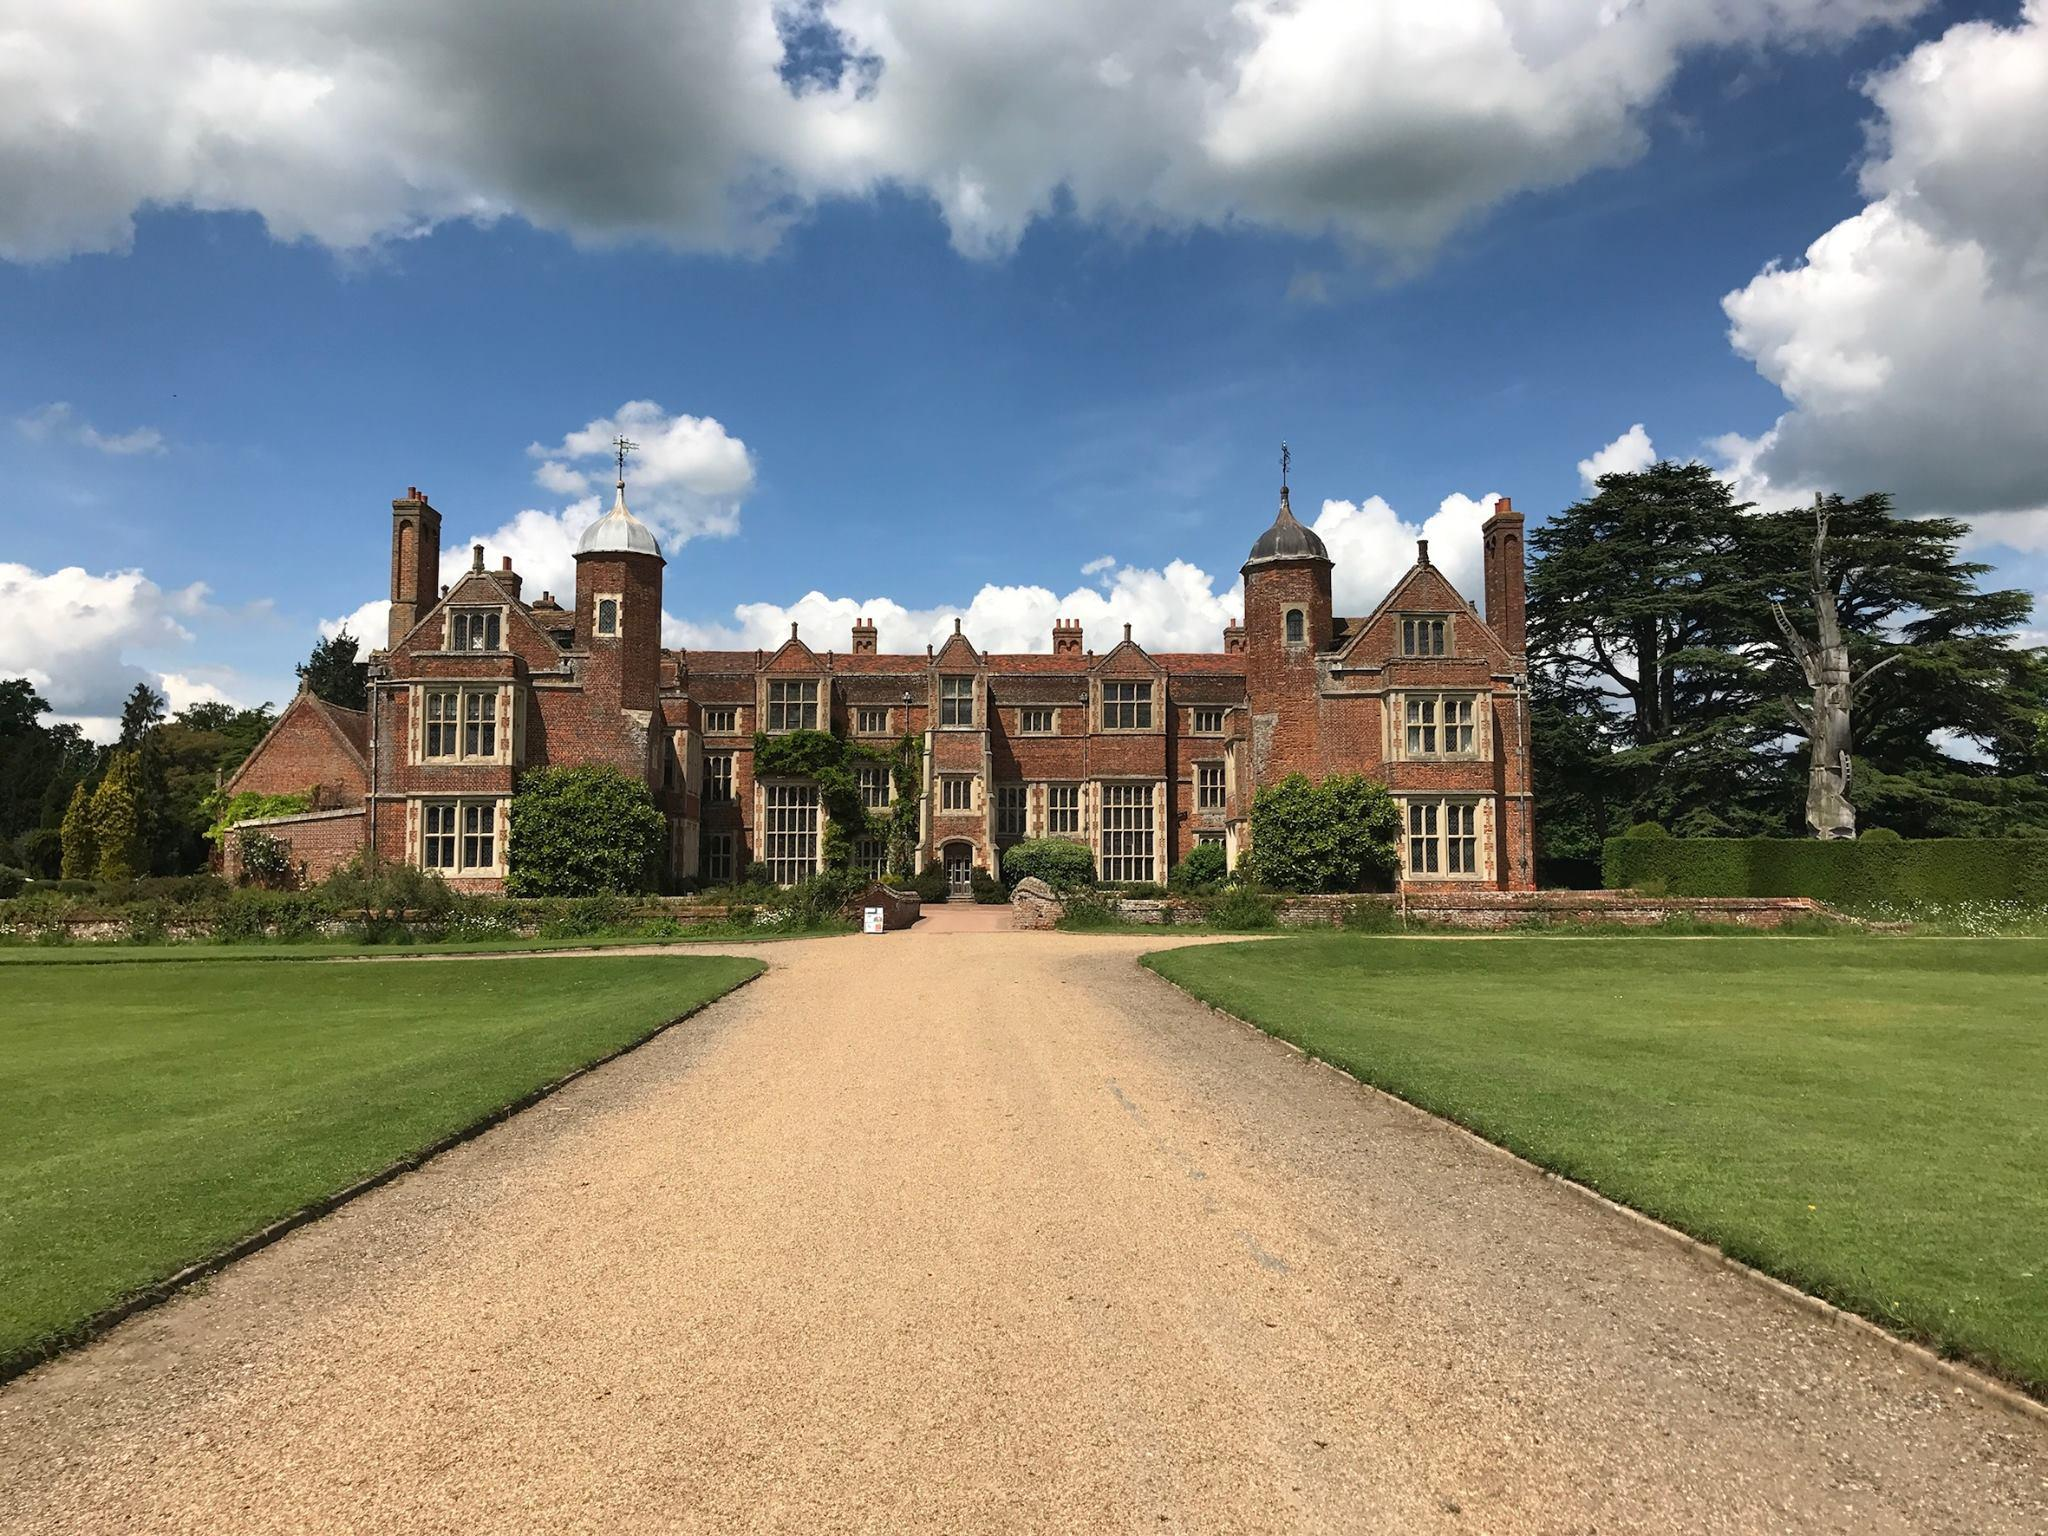 Kentwell Hall of Long Melford